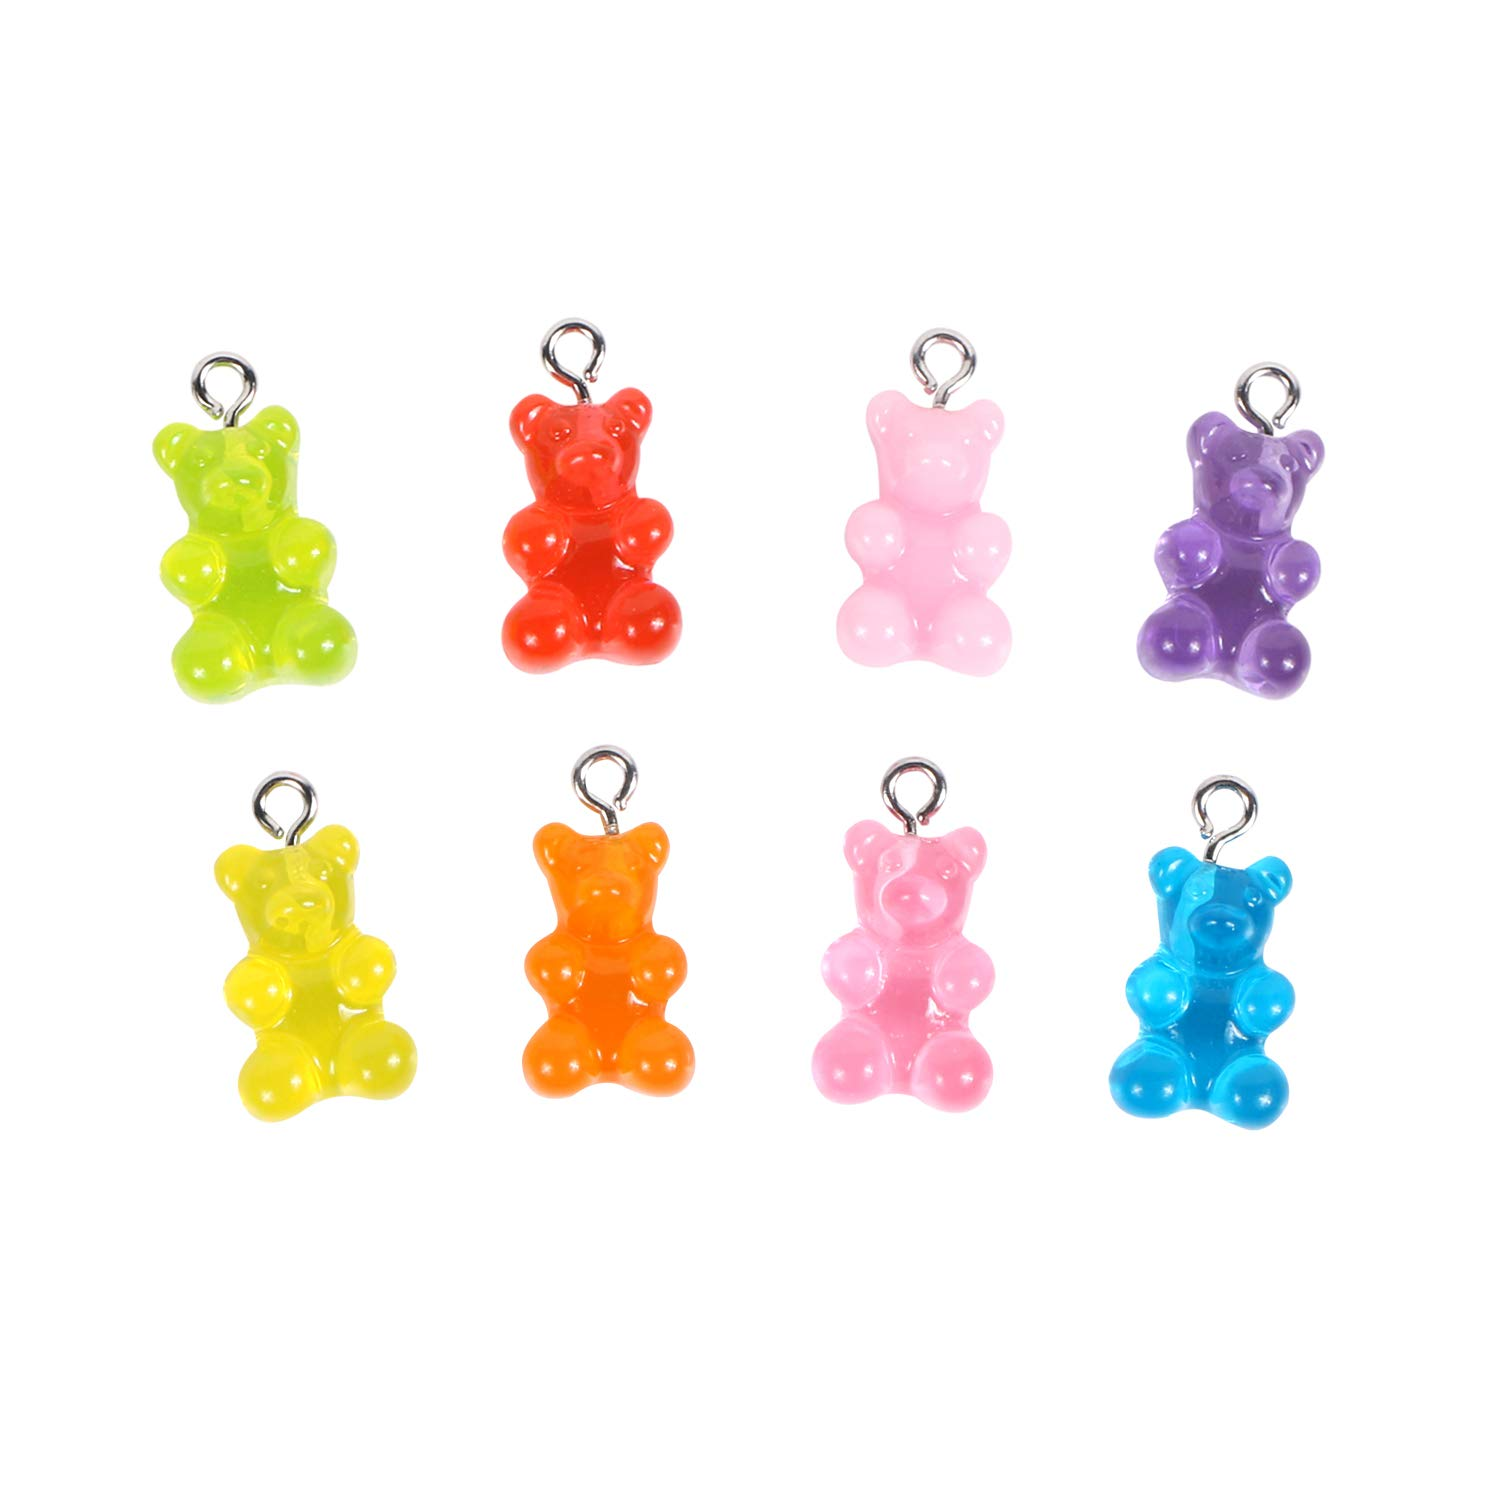 50Pcs Resin Cute Bear Mixed Color Charms Pendant DIY Keychain Making Necklace A+